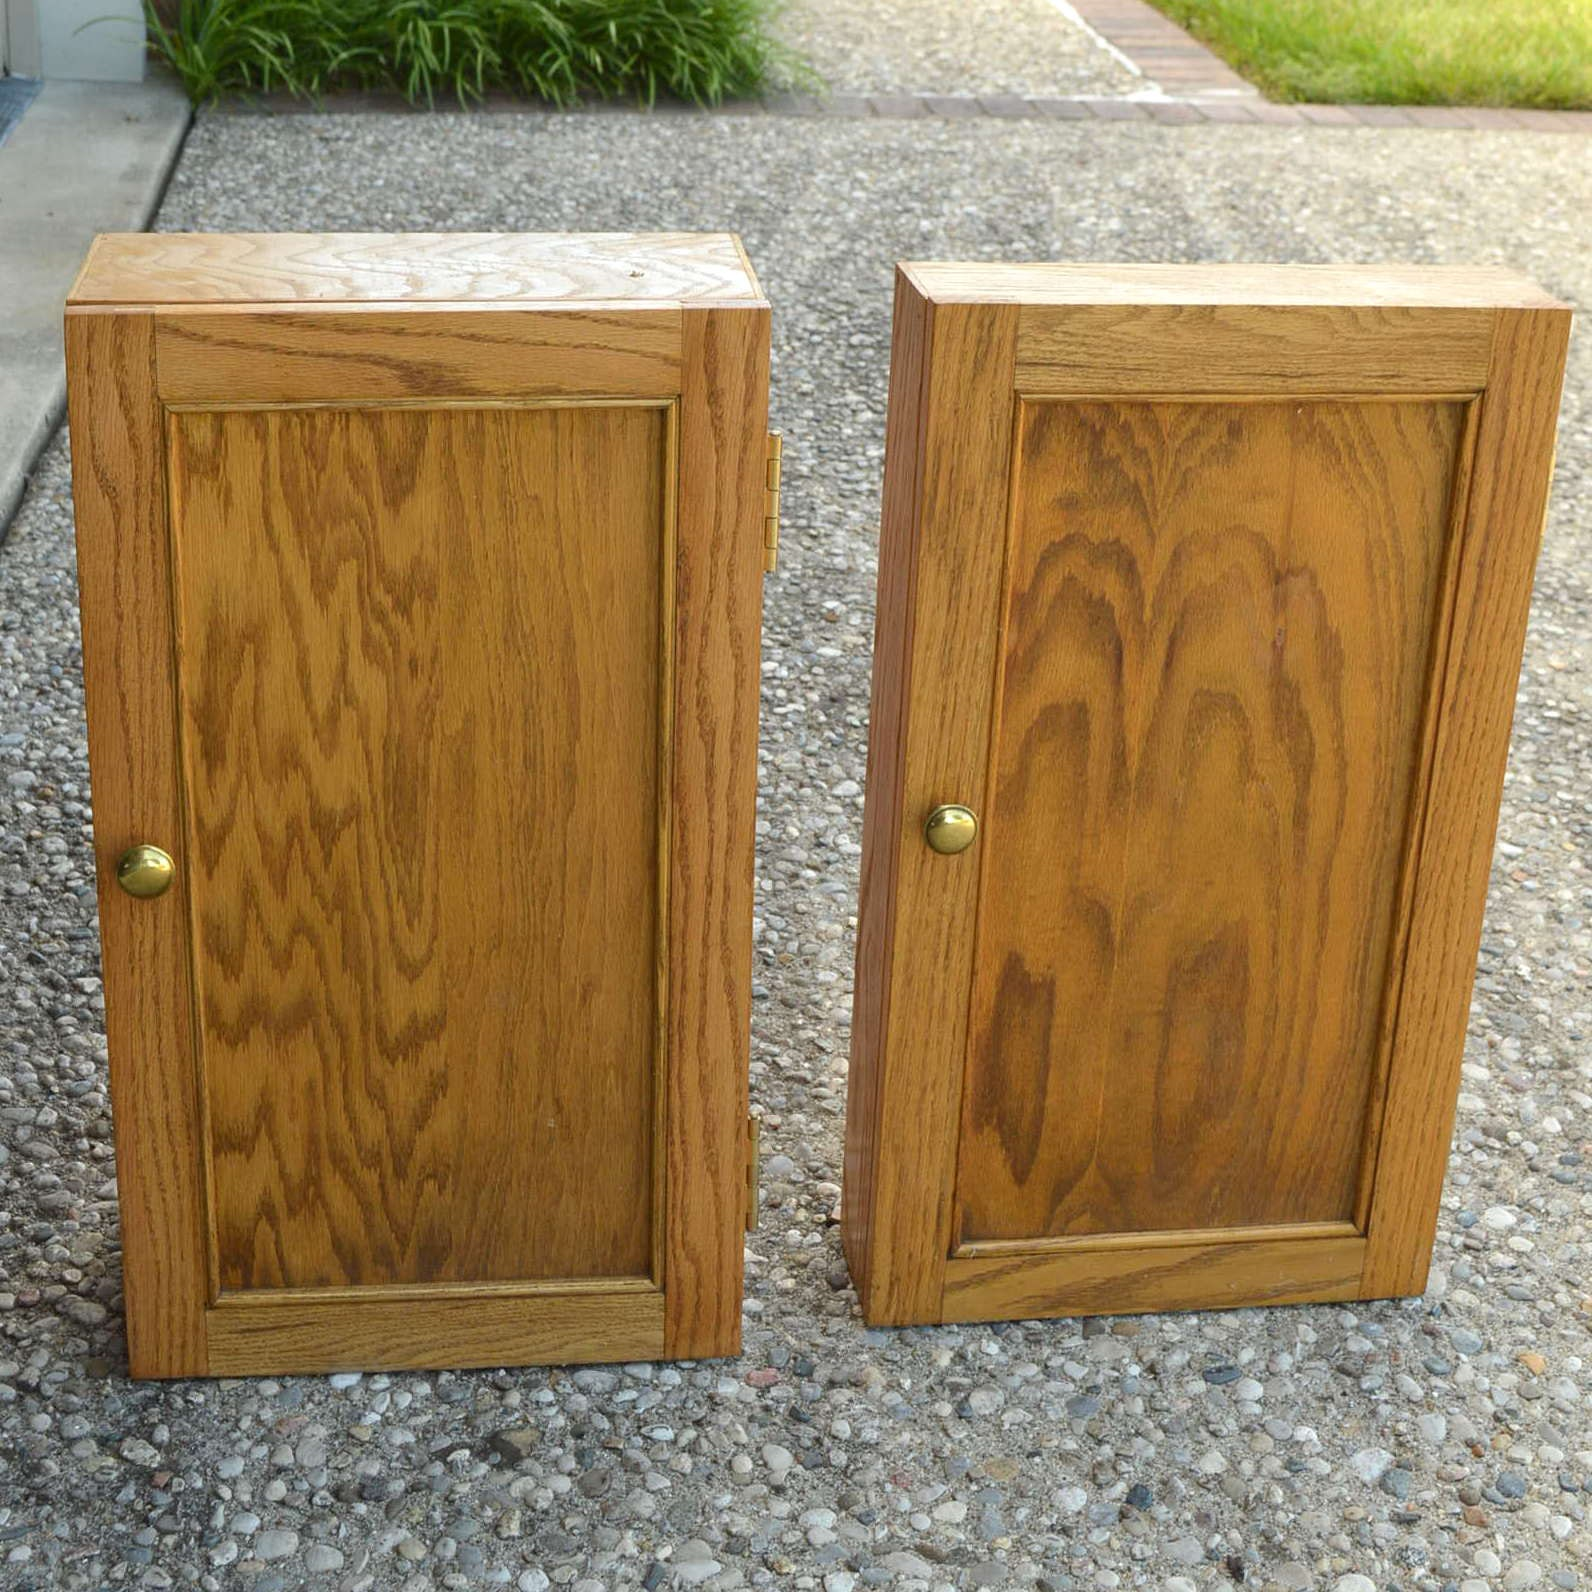 Bathroom Vanities Lexington Ky vintage bathroom vanity | used bathroom vanities for sale in